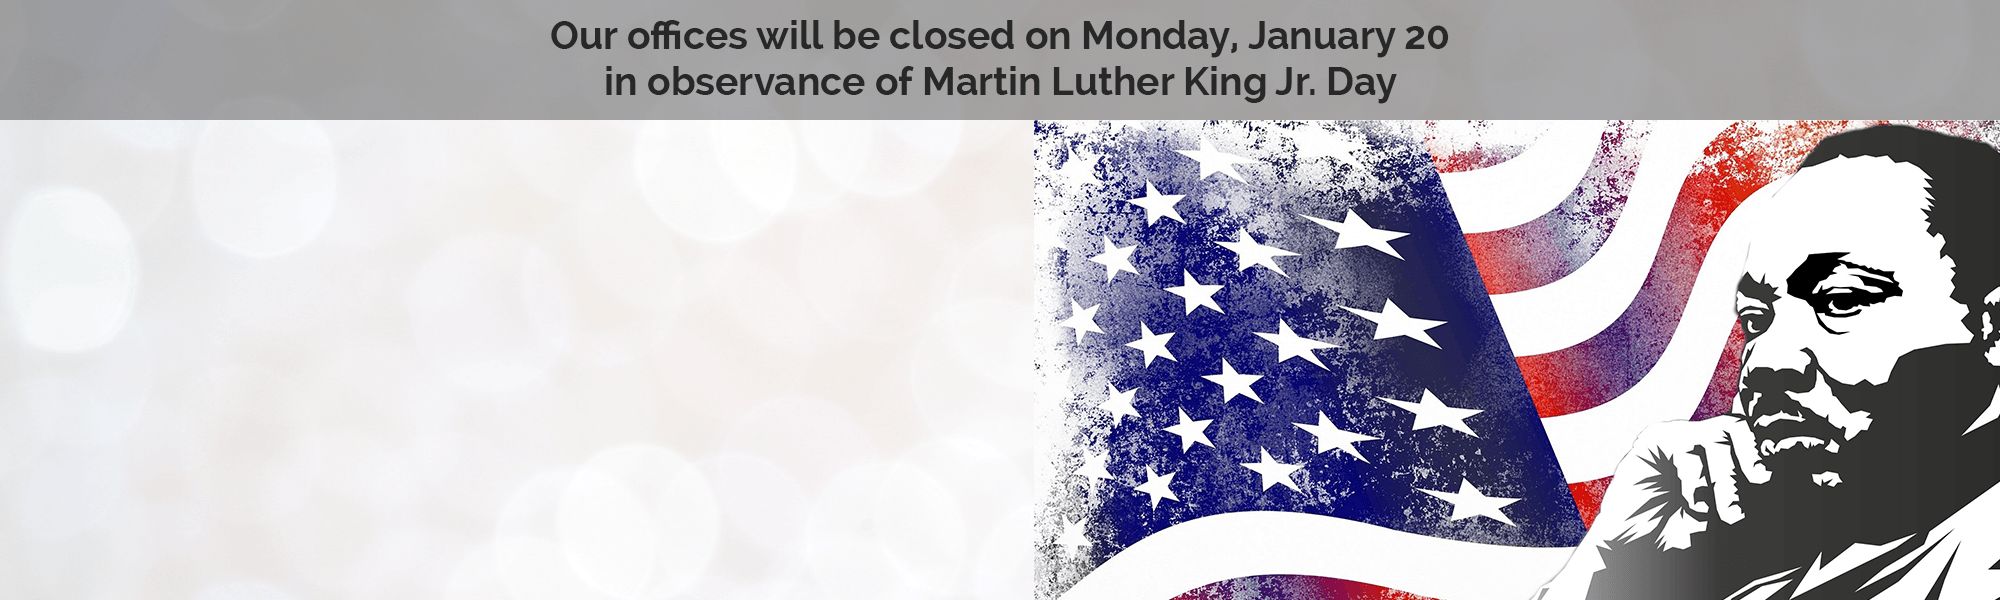 Our offices will be closed on Monday, January 20 in observance of Martin Luther King Jr. Day